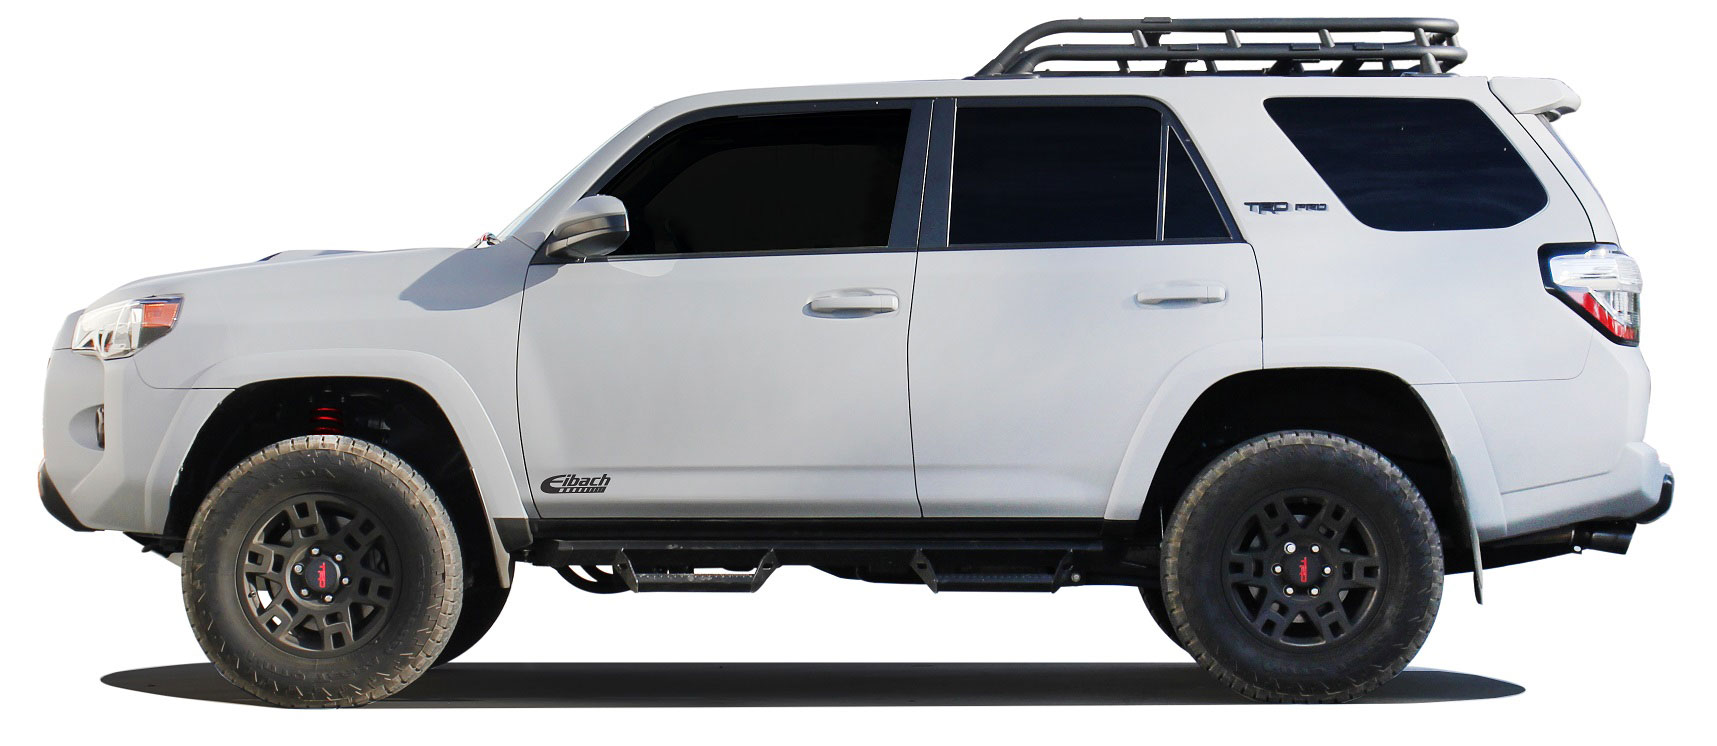 2019-20 4Runner TRD Pro After Lift Kit